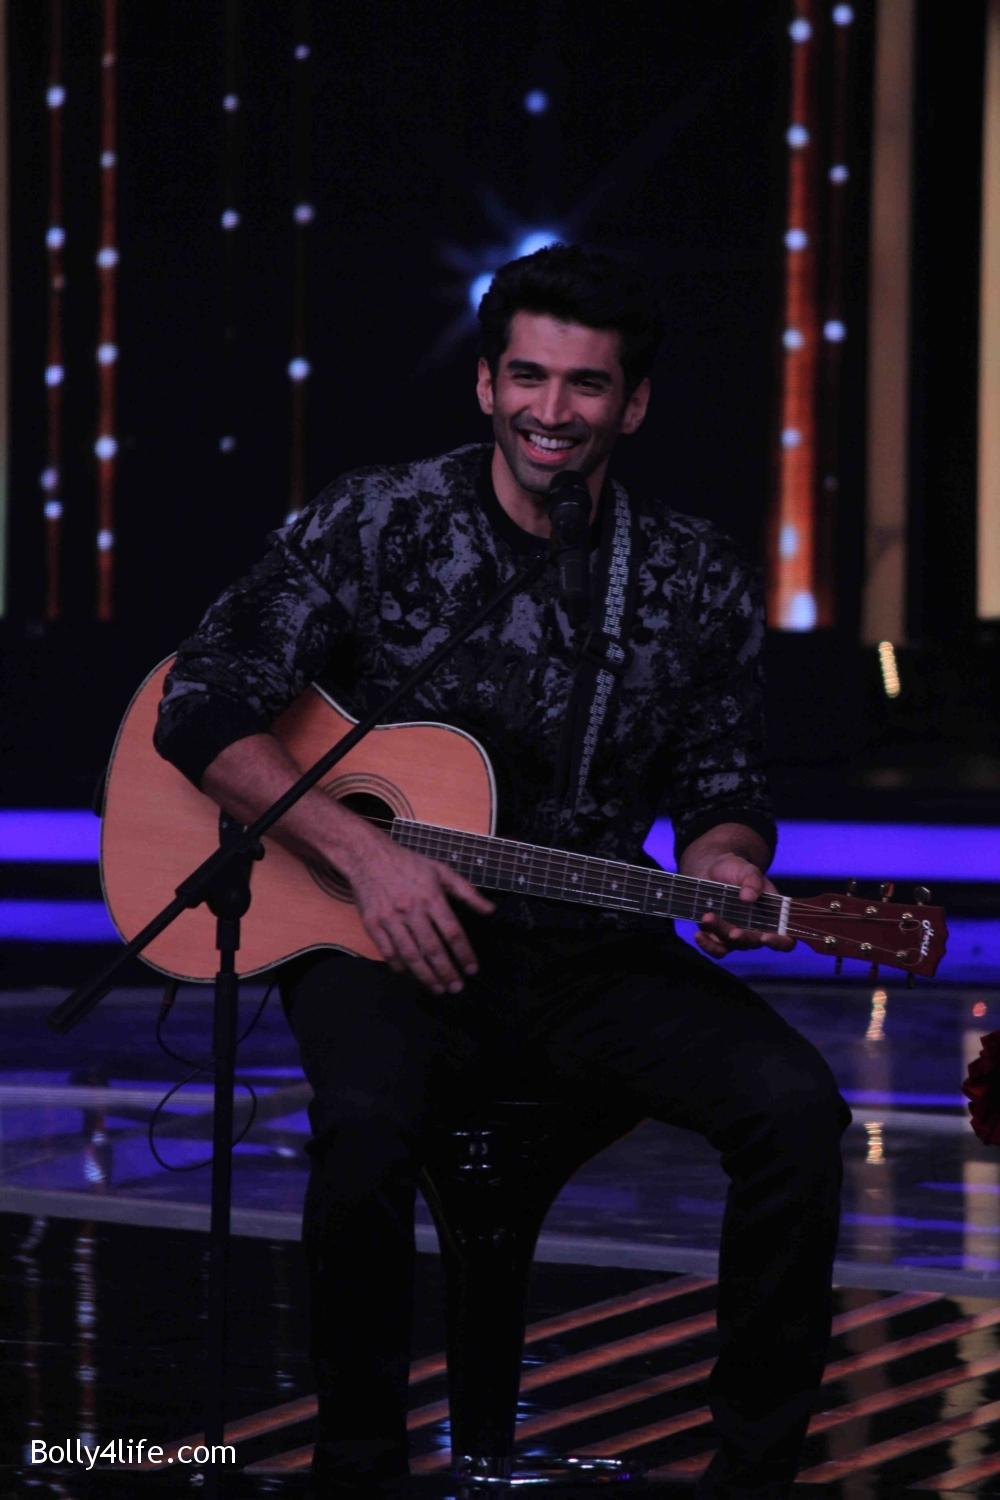 Aditya-Roy-Kapur-and-Shraddha-Kapoor-during-the-promotion-of-film-Ok-Jaanu-on-the-sets-Star-Plus-singing-reality-show-Dil-Hai-Hindustani-20.jpg